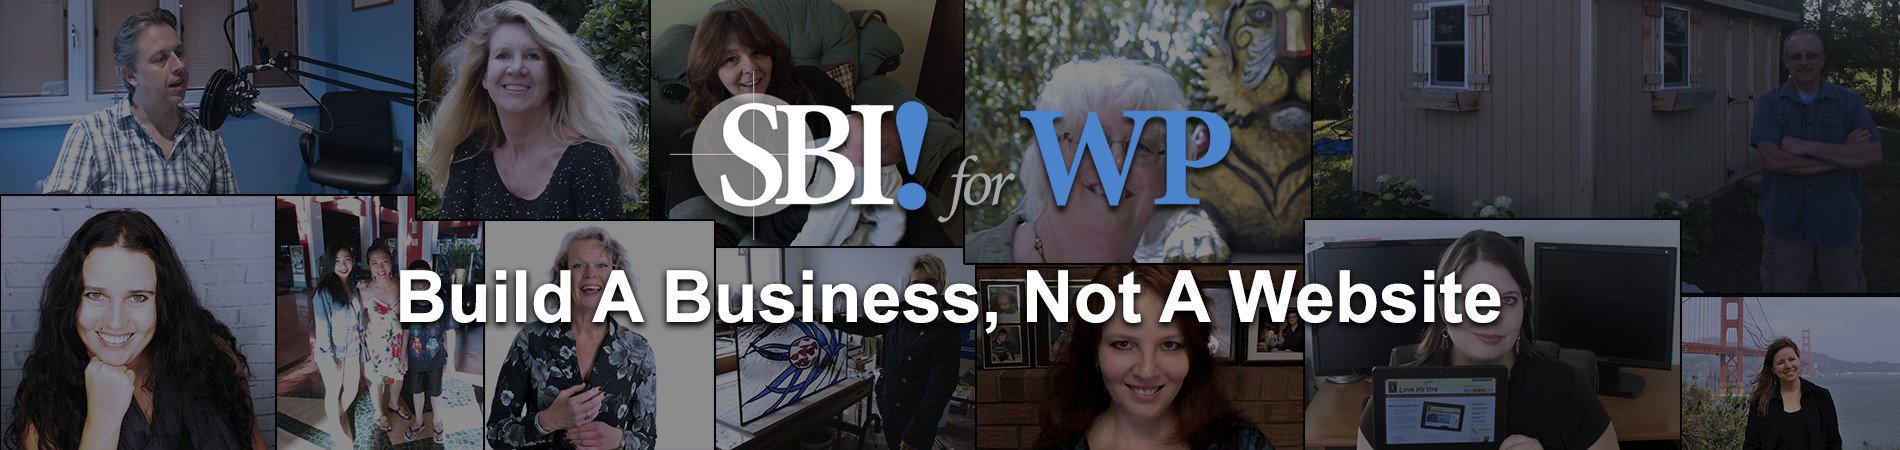 Everyday people build extraordinary web businesses with SBI!. Every day.